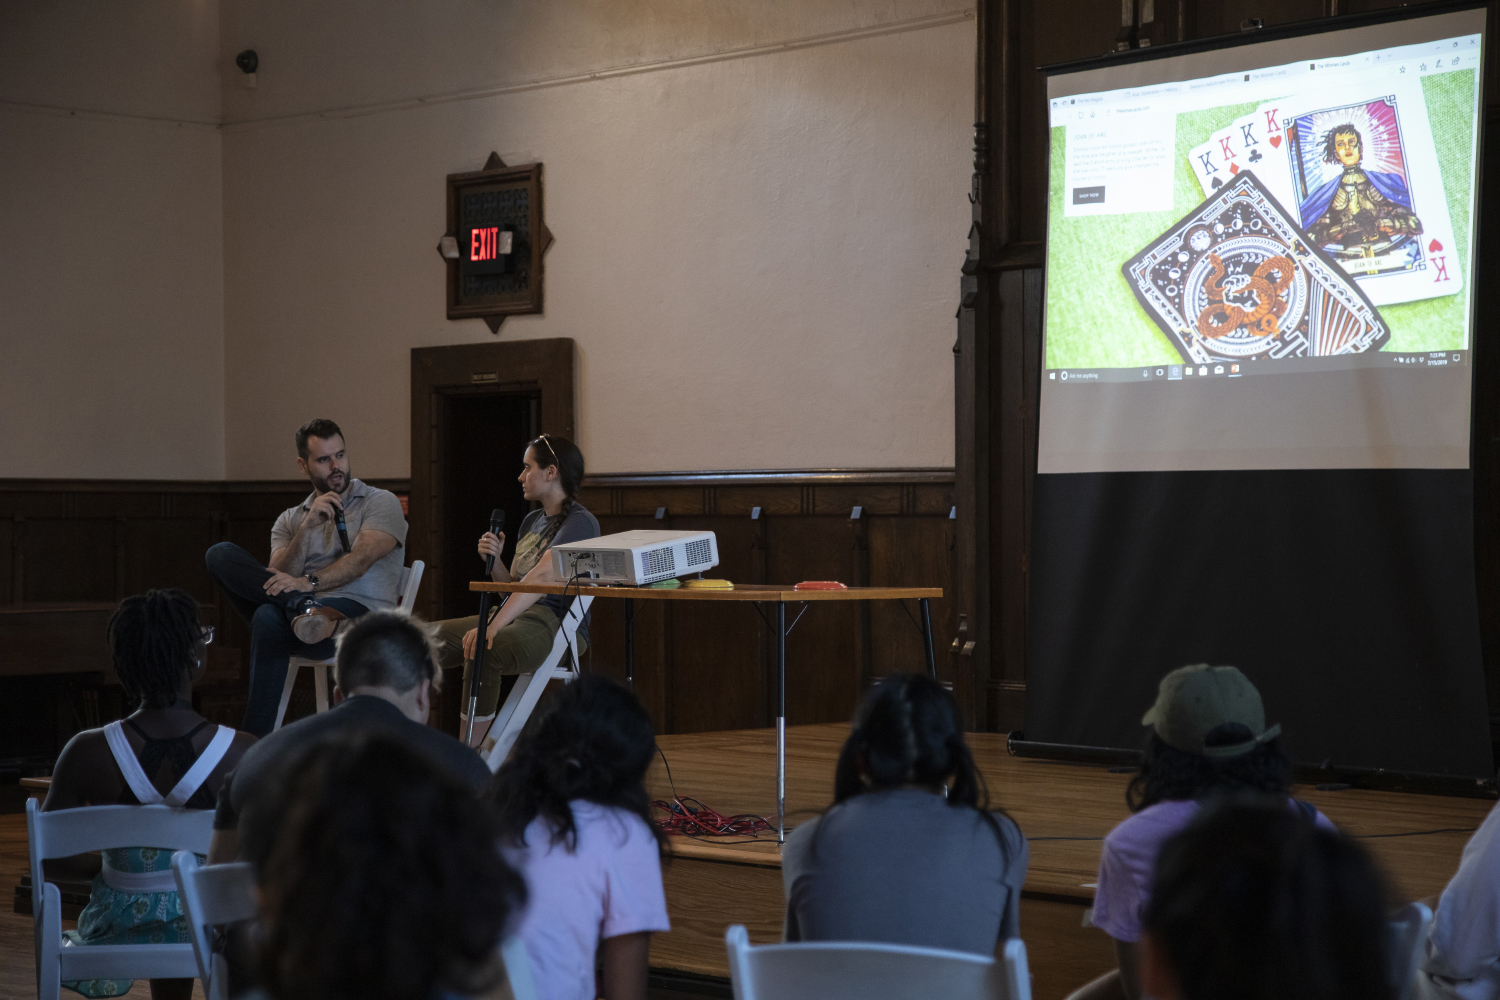 Sen. Zach Wahls and his sister Zebby Wahls speak about their playing cards, The Woman Cards, during a meeting with the Belin-Blank summer residency program at Old Brick on July 15, 2019. They spoke with students about the starting their own business.